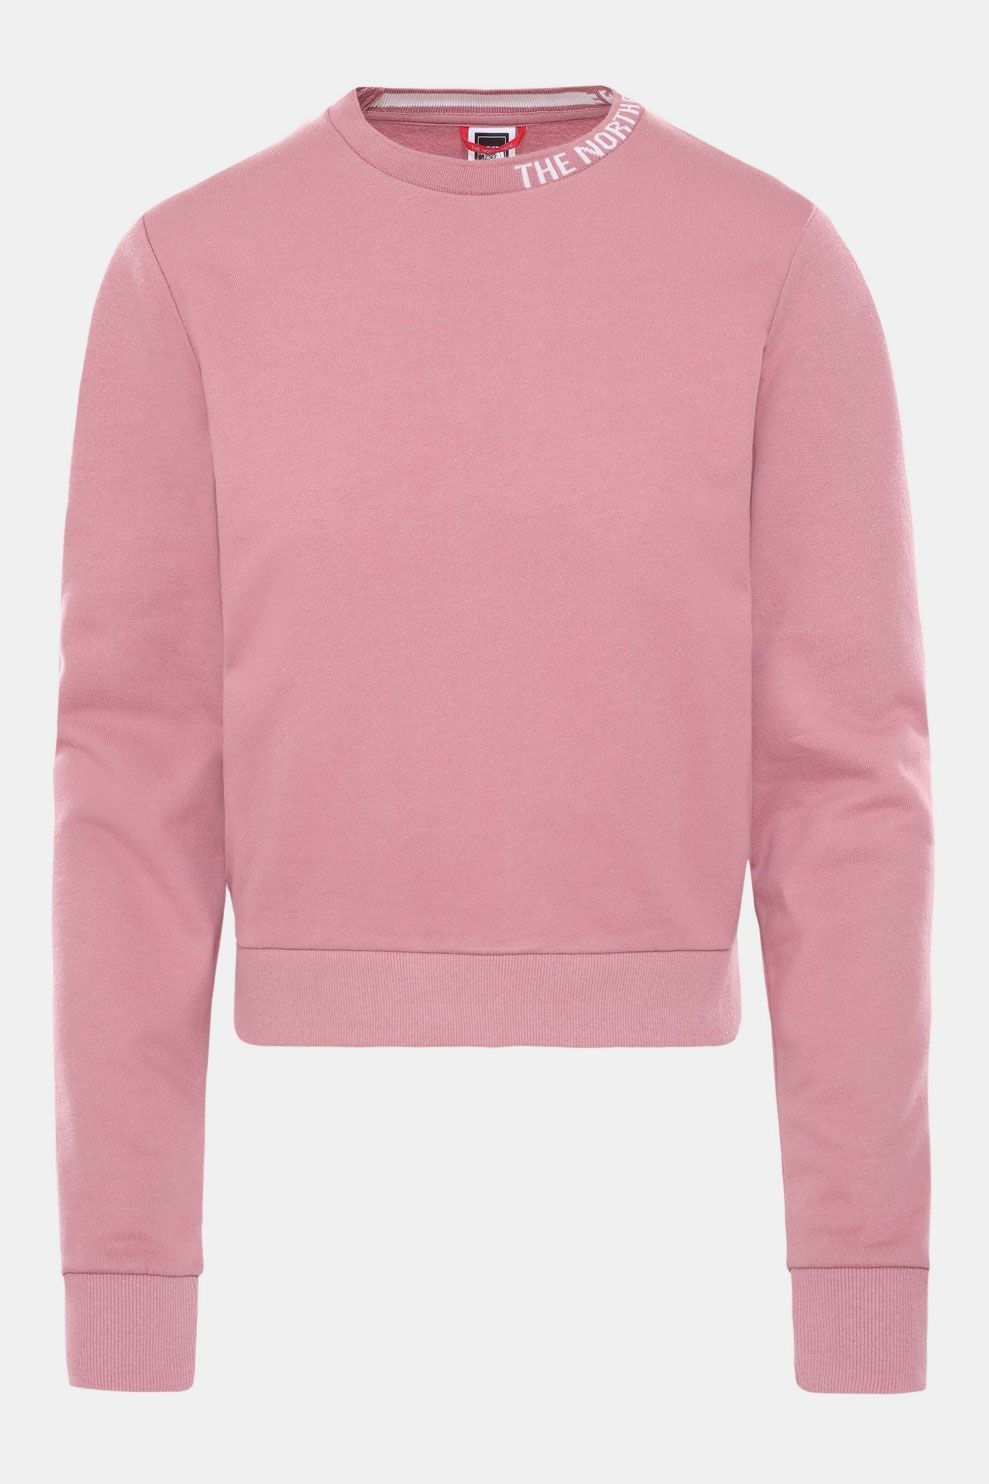 The North Face The North Face Sidealley Crew Dames Sweater Middenroze